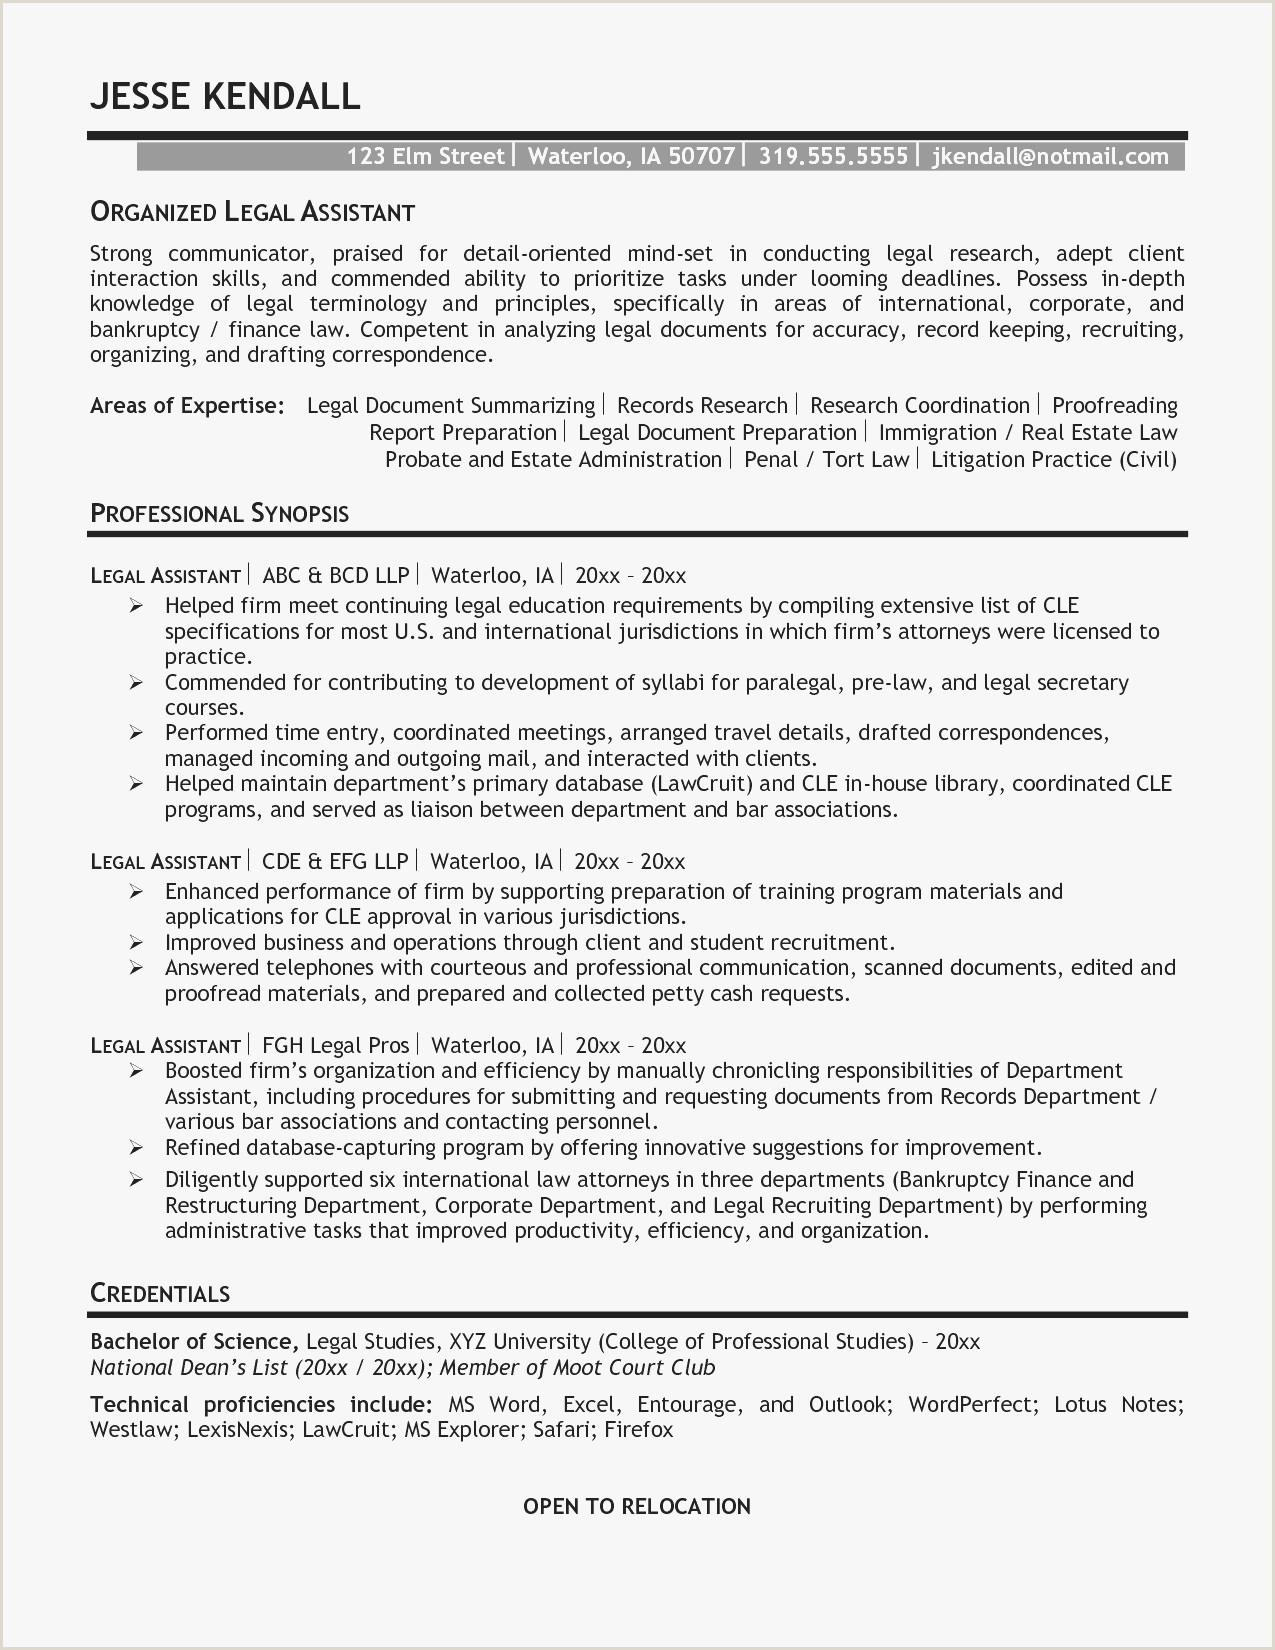 Real Estate Resume – Kizi games